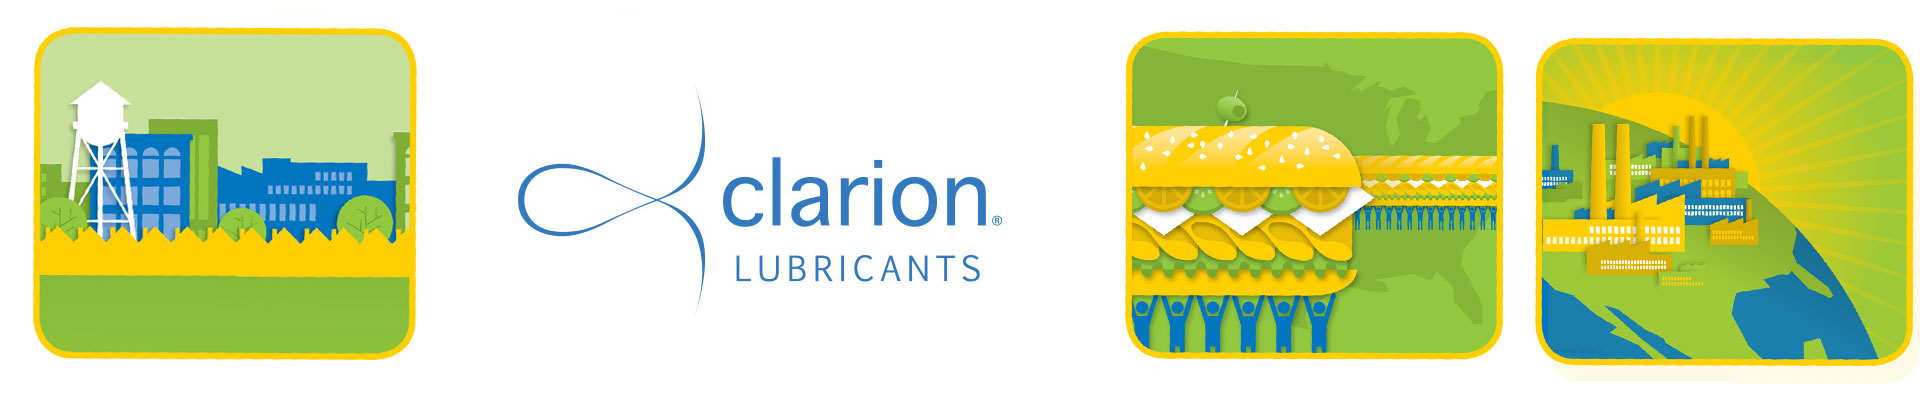 clarion-food-grade-lubricants-sutton